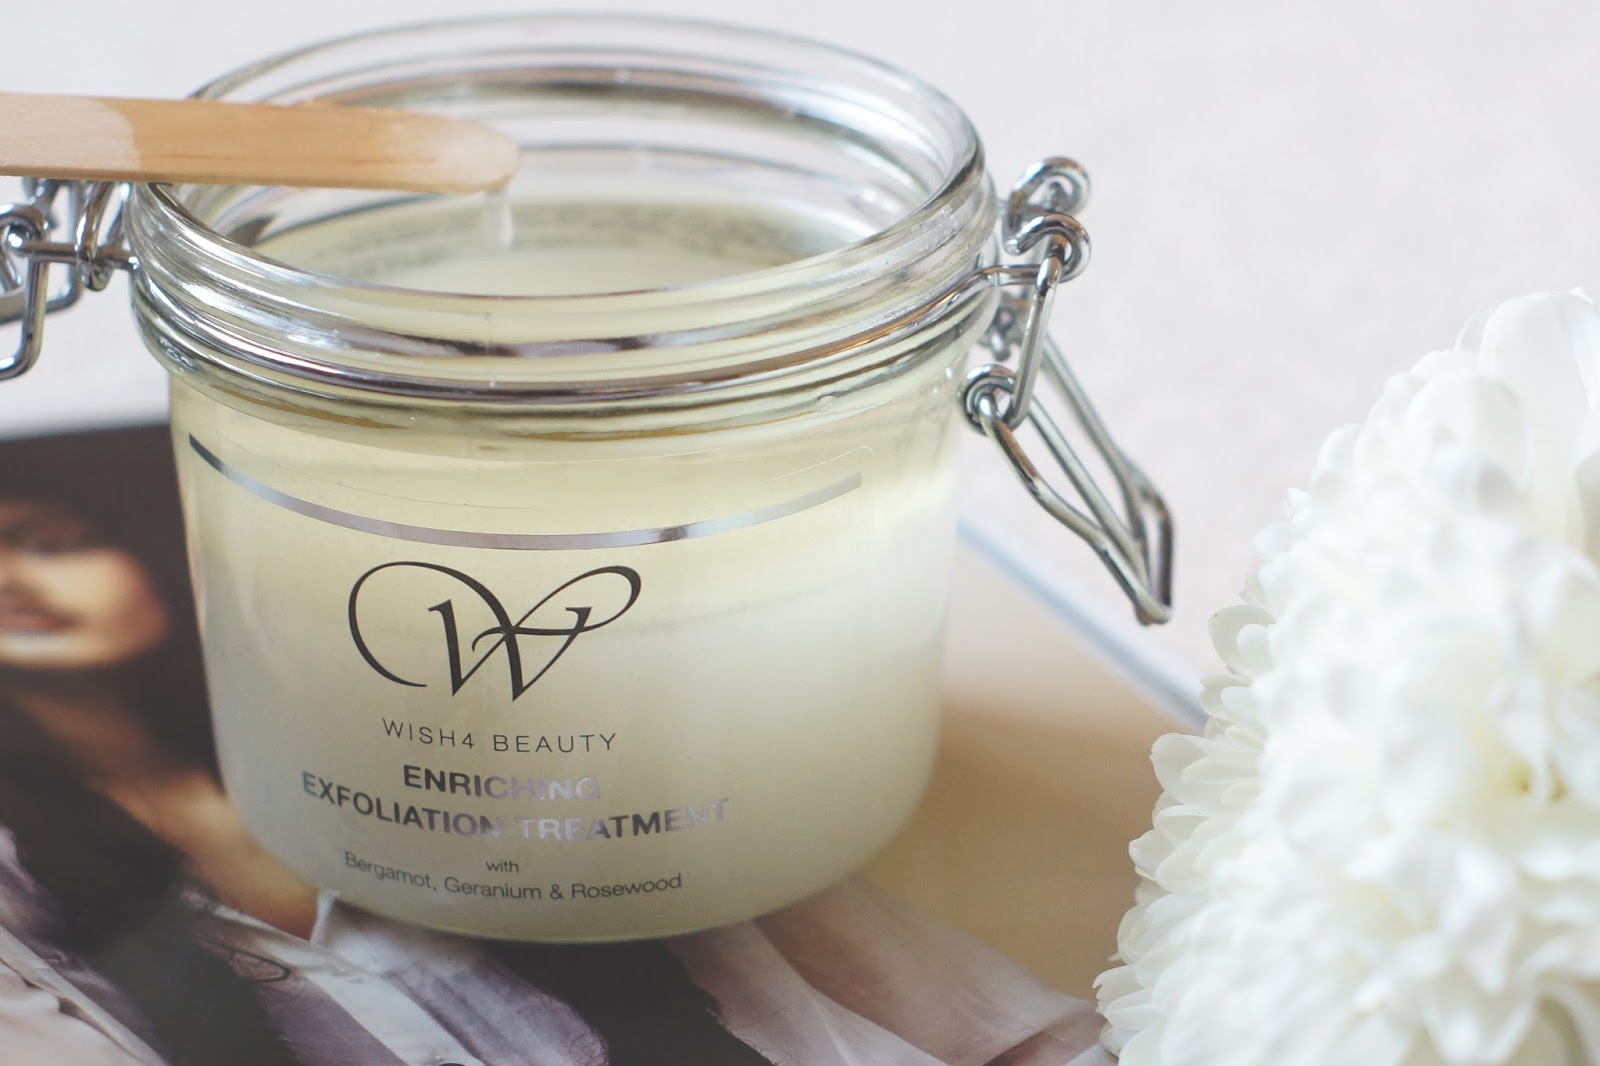 Wish 4 Beauty Enriching Exfoliation Treatment Hello Freckles Review